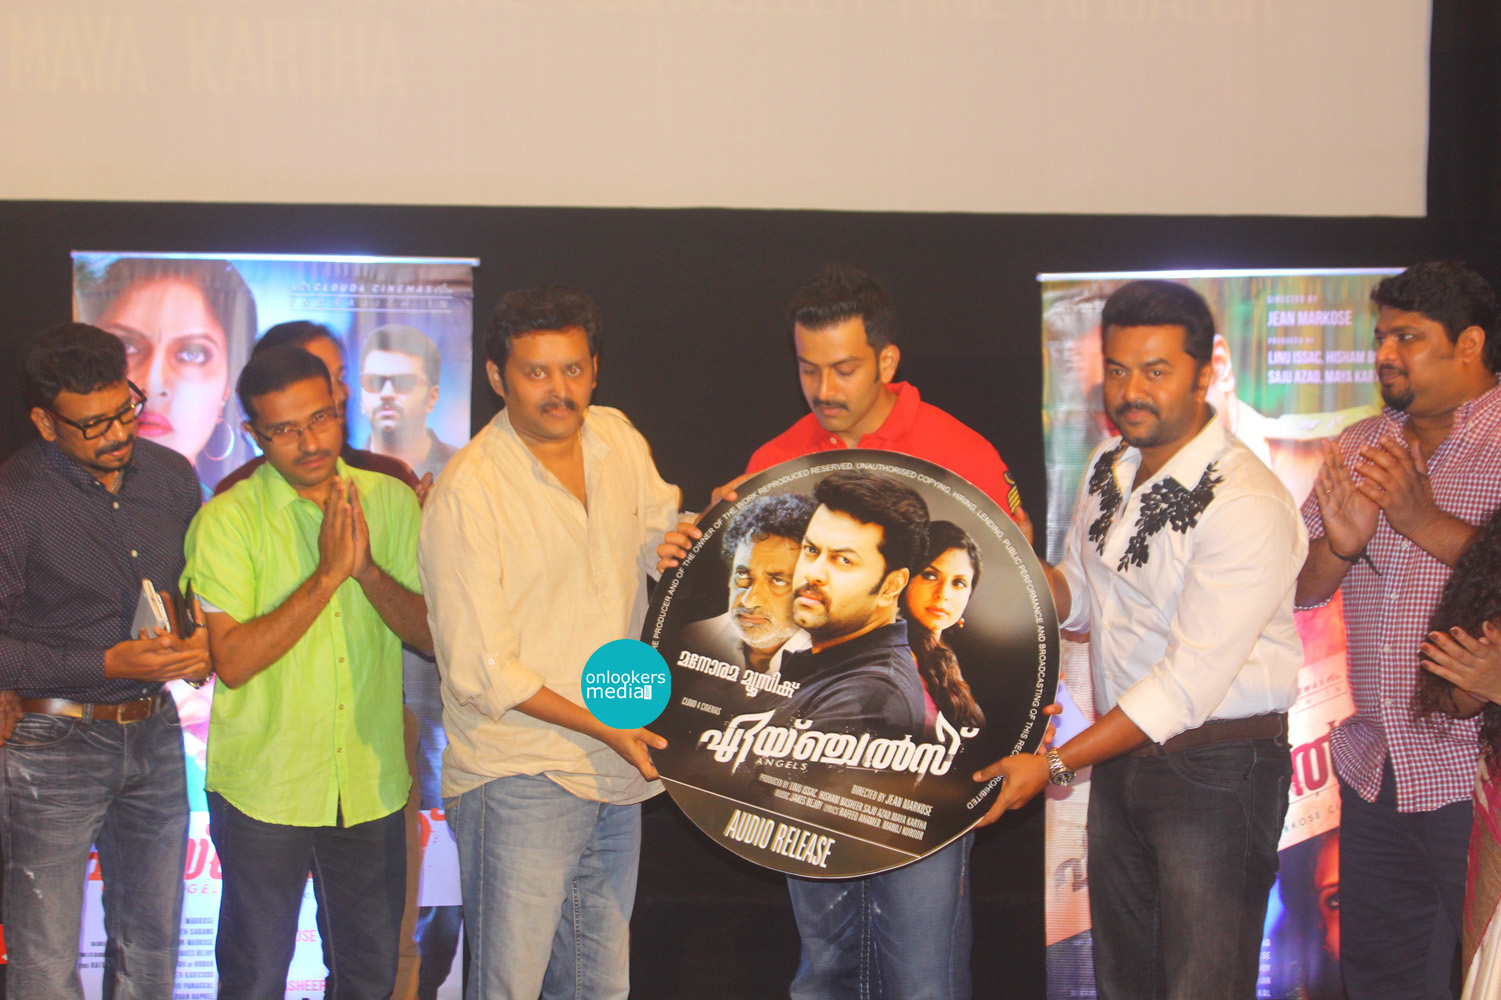 Angels Malayalam Movie Audio Launch Stills-Indrajith-Prithviraj-Poornima Indrajith- Geethu Mohandas-Onlookers Media